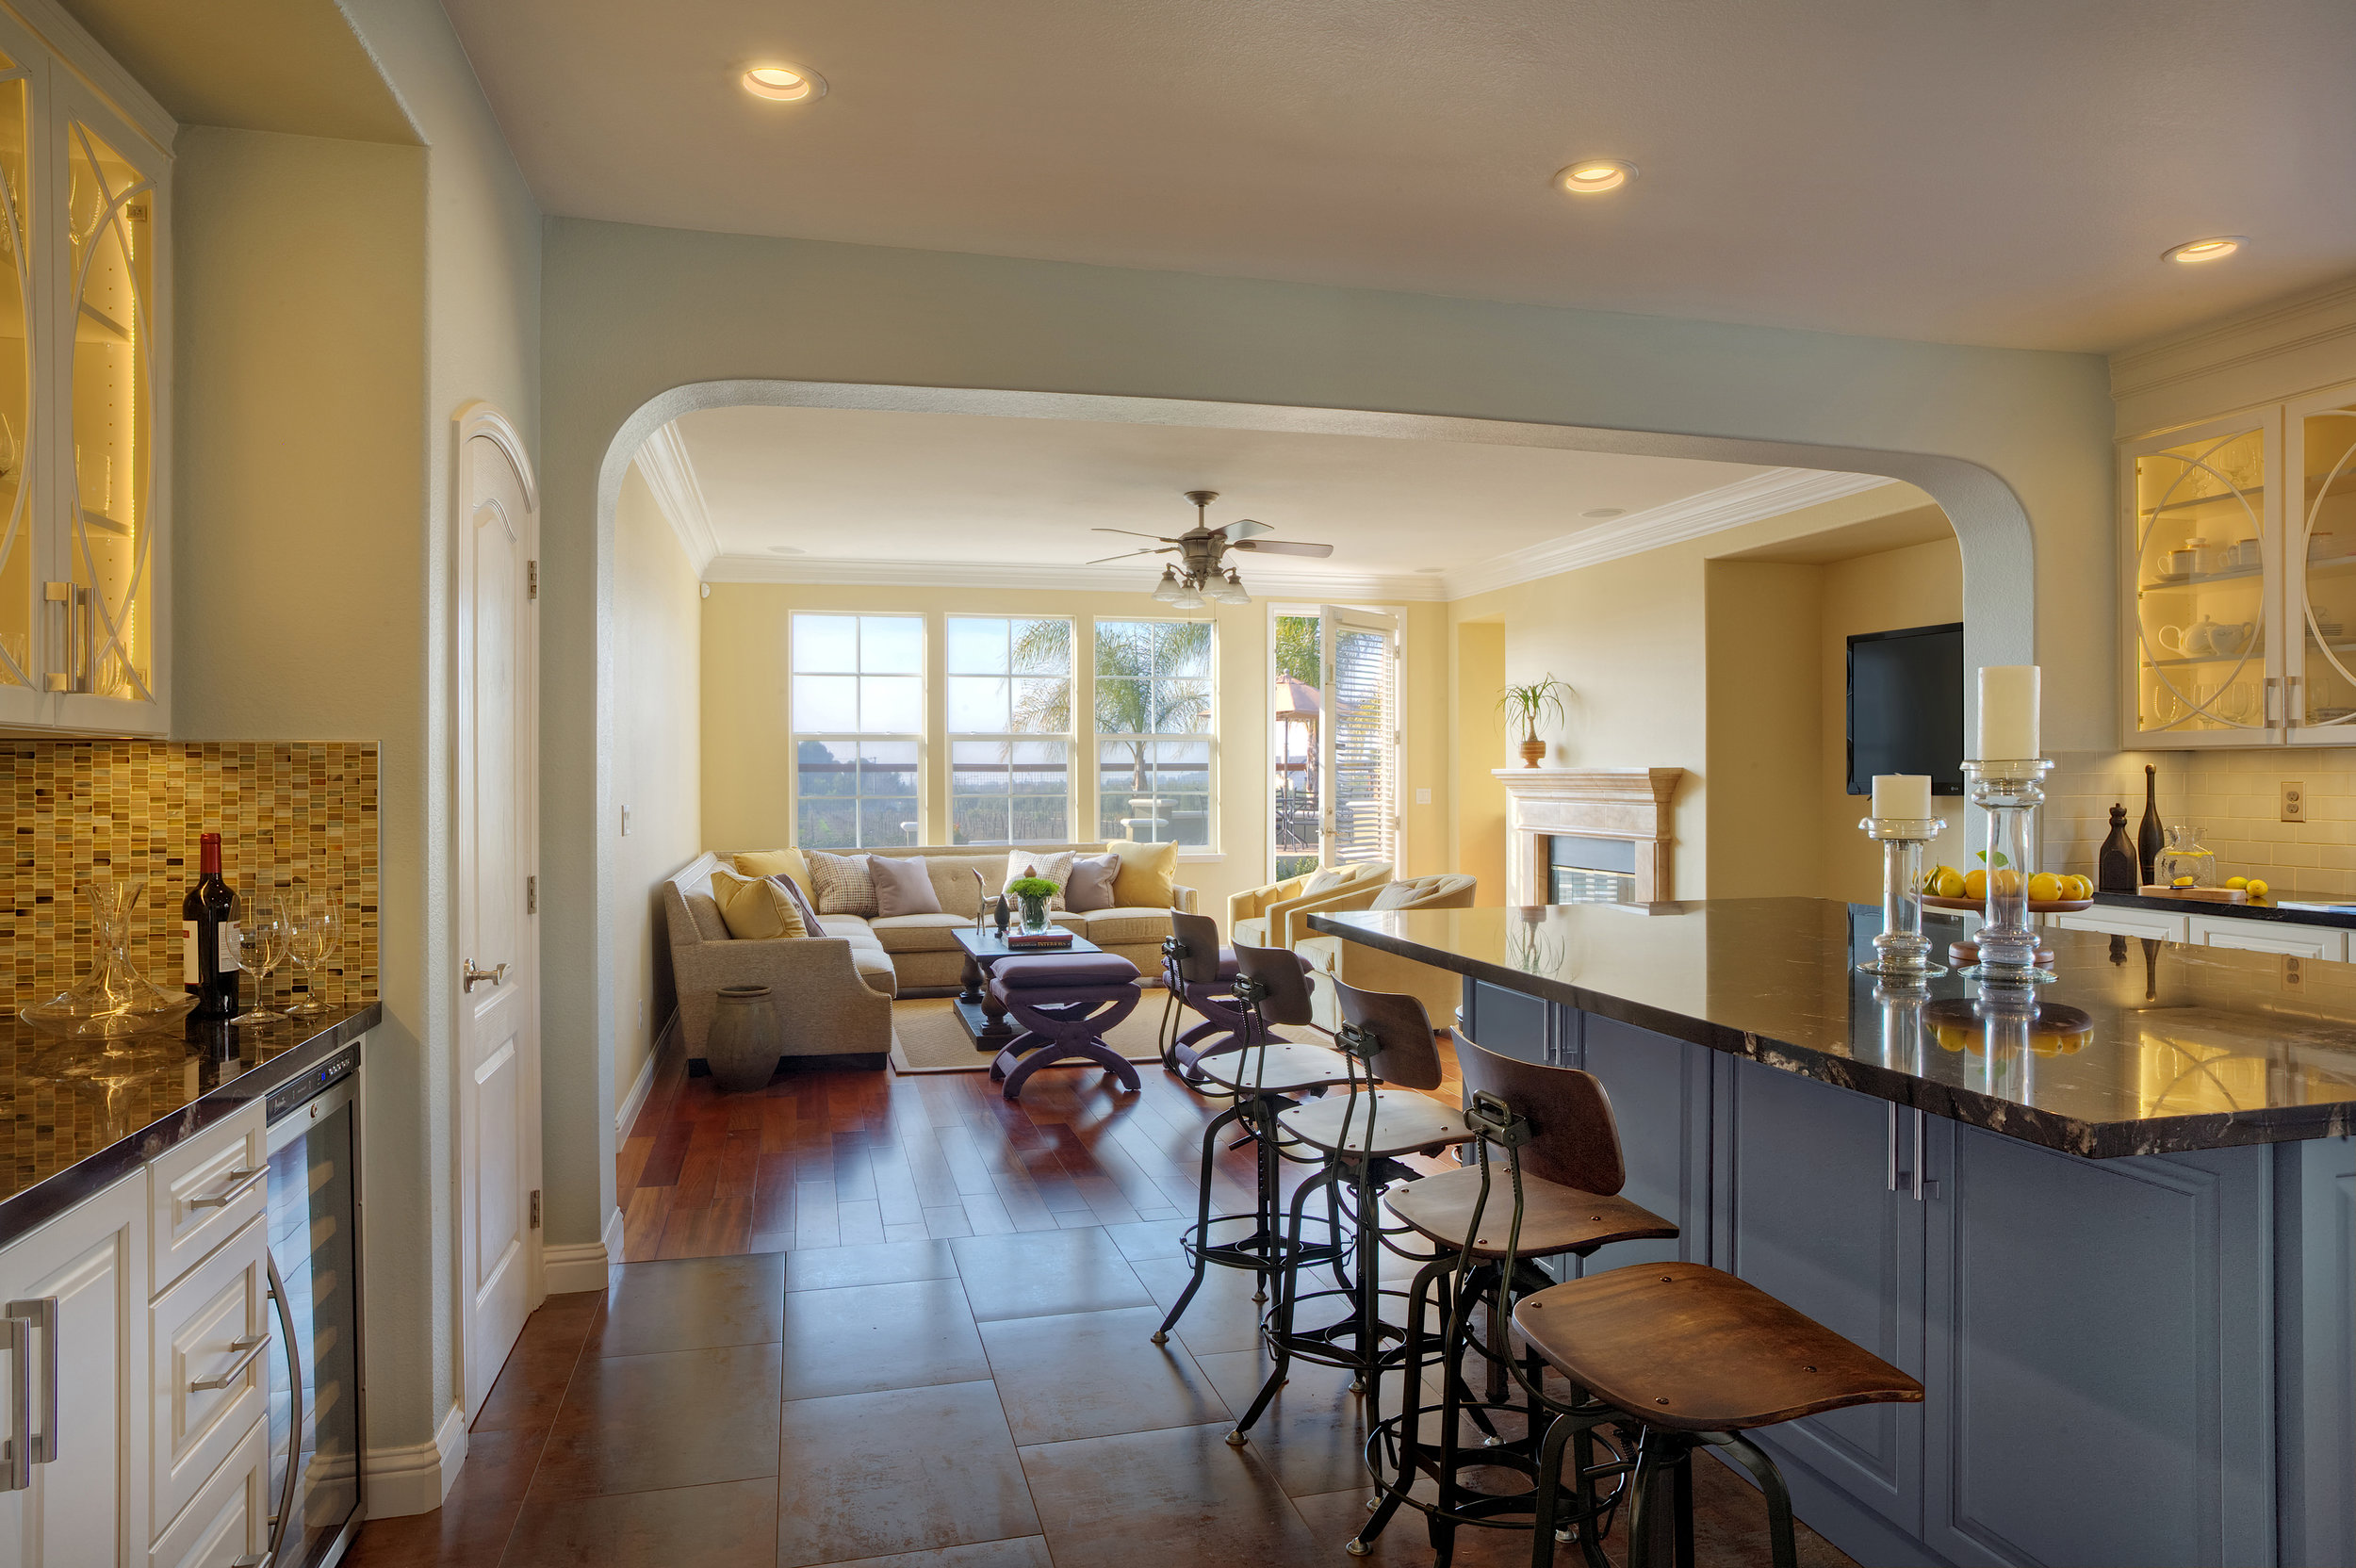 2755YountvilleKitchFamRm-Photo2.jpg